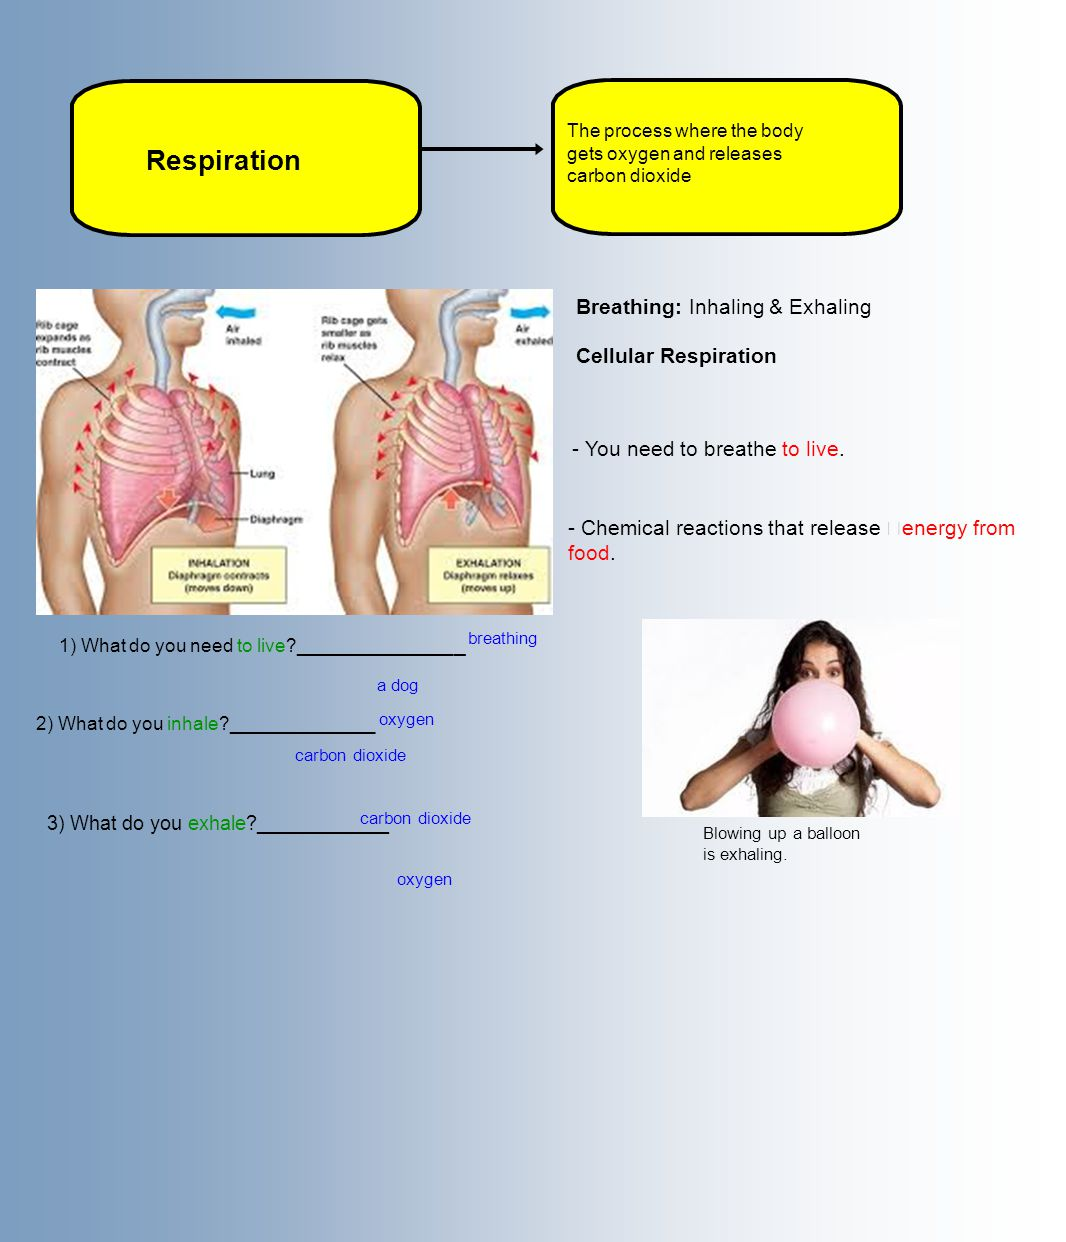 Respiration The process where the body gets oxygen and releases carbon dioxide Breathing: Inhaling & Exhaling - Chemical reactions that release energy from food.